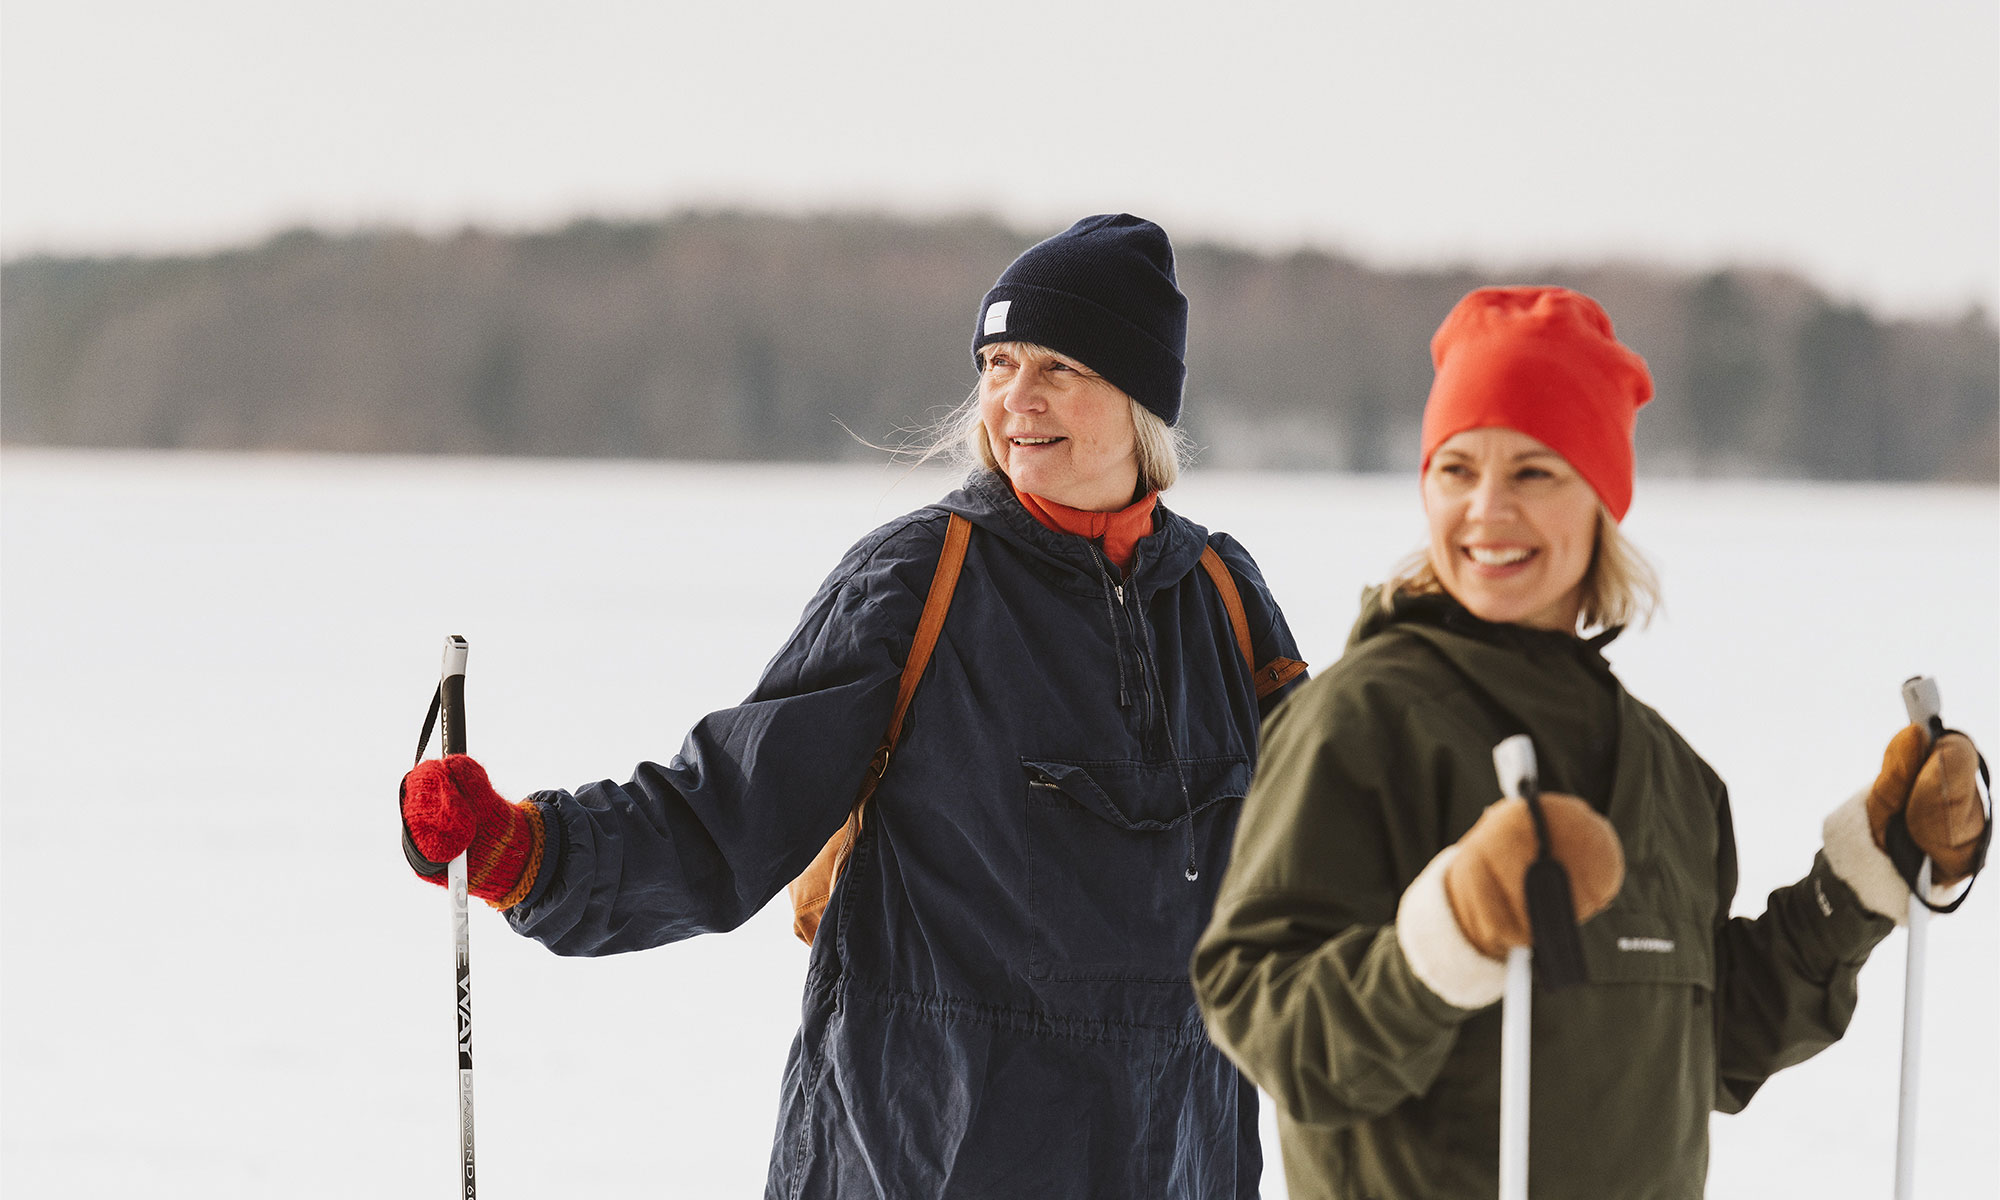 Two women out skiing.